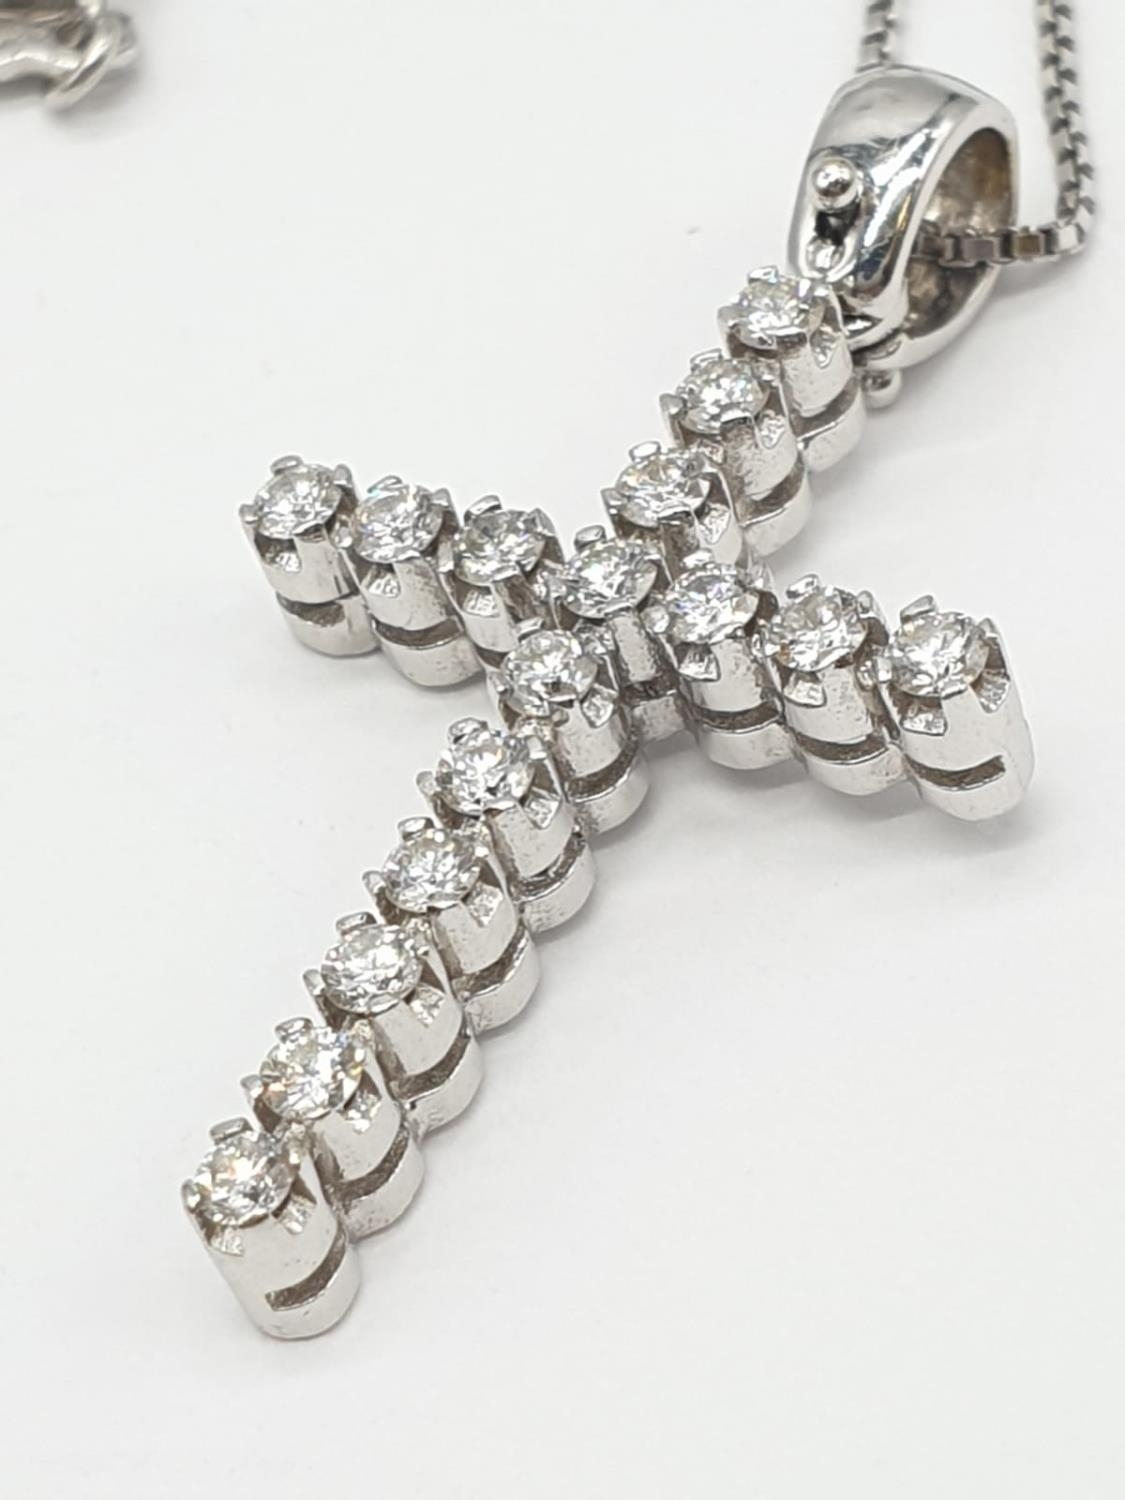 18ct White Gold Diamond Cross on a 38cm CHAIN. 5g - Image 2 of 7